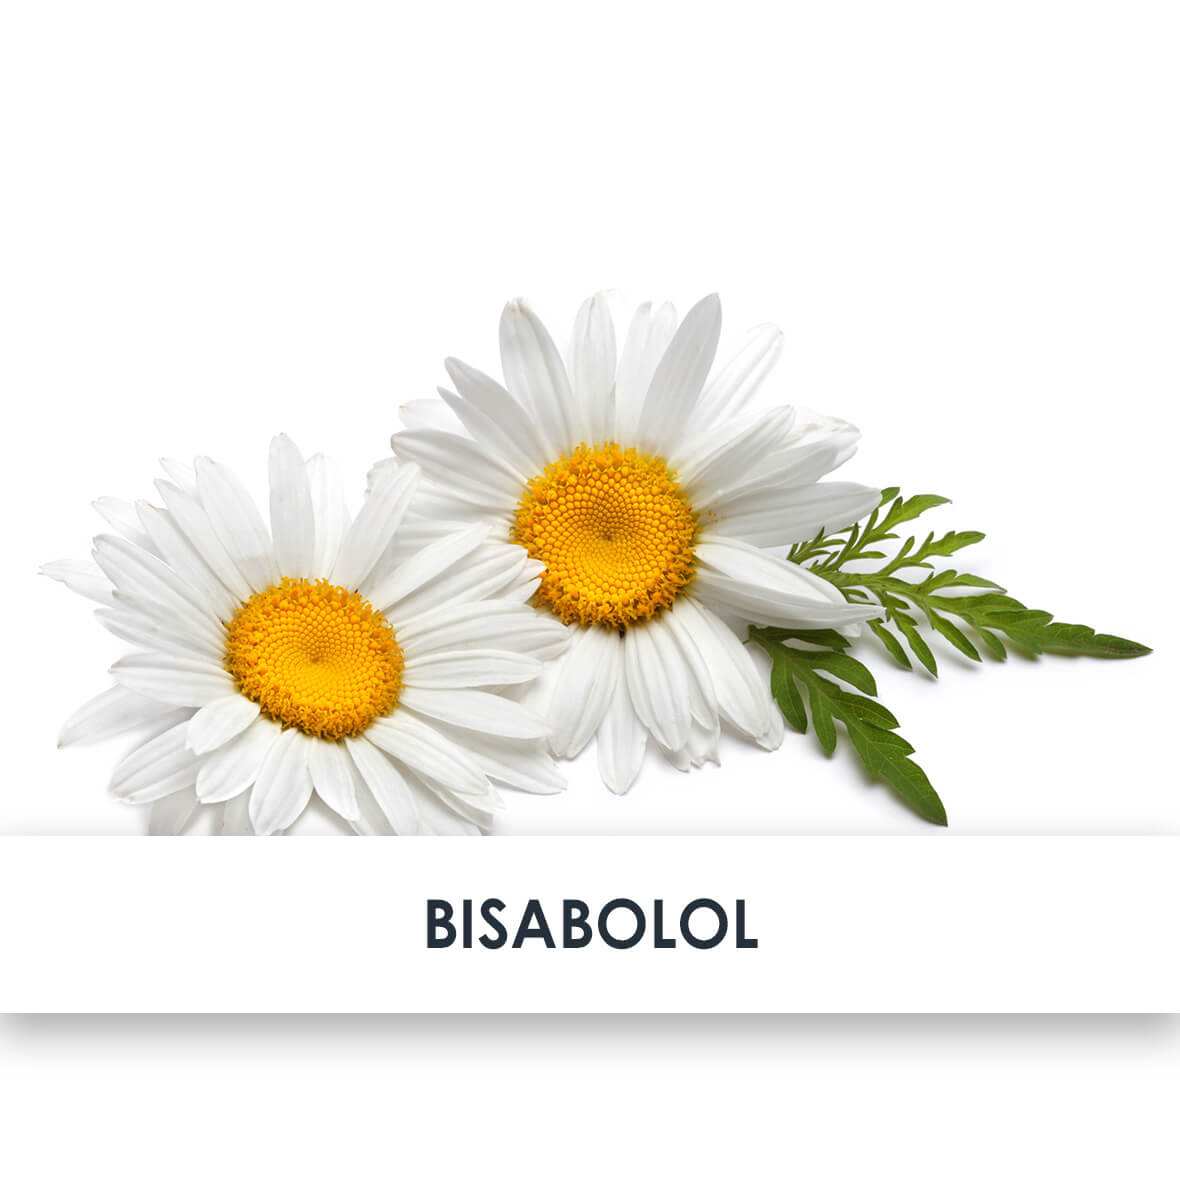 Active Ingredient Bisabolol